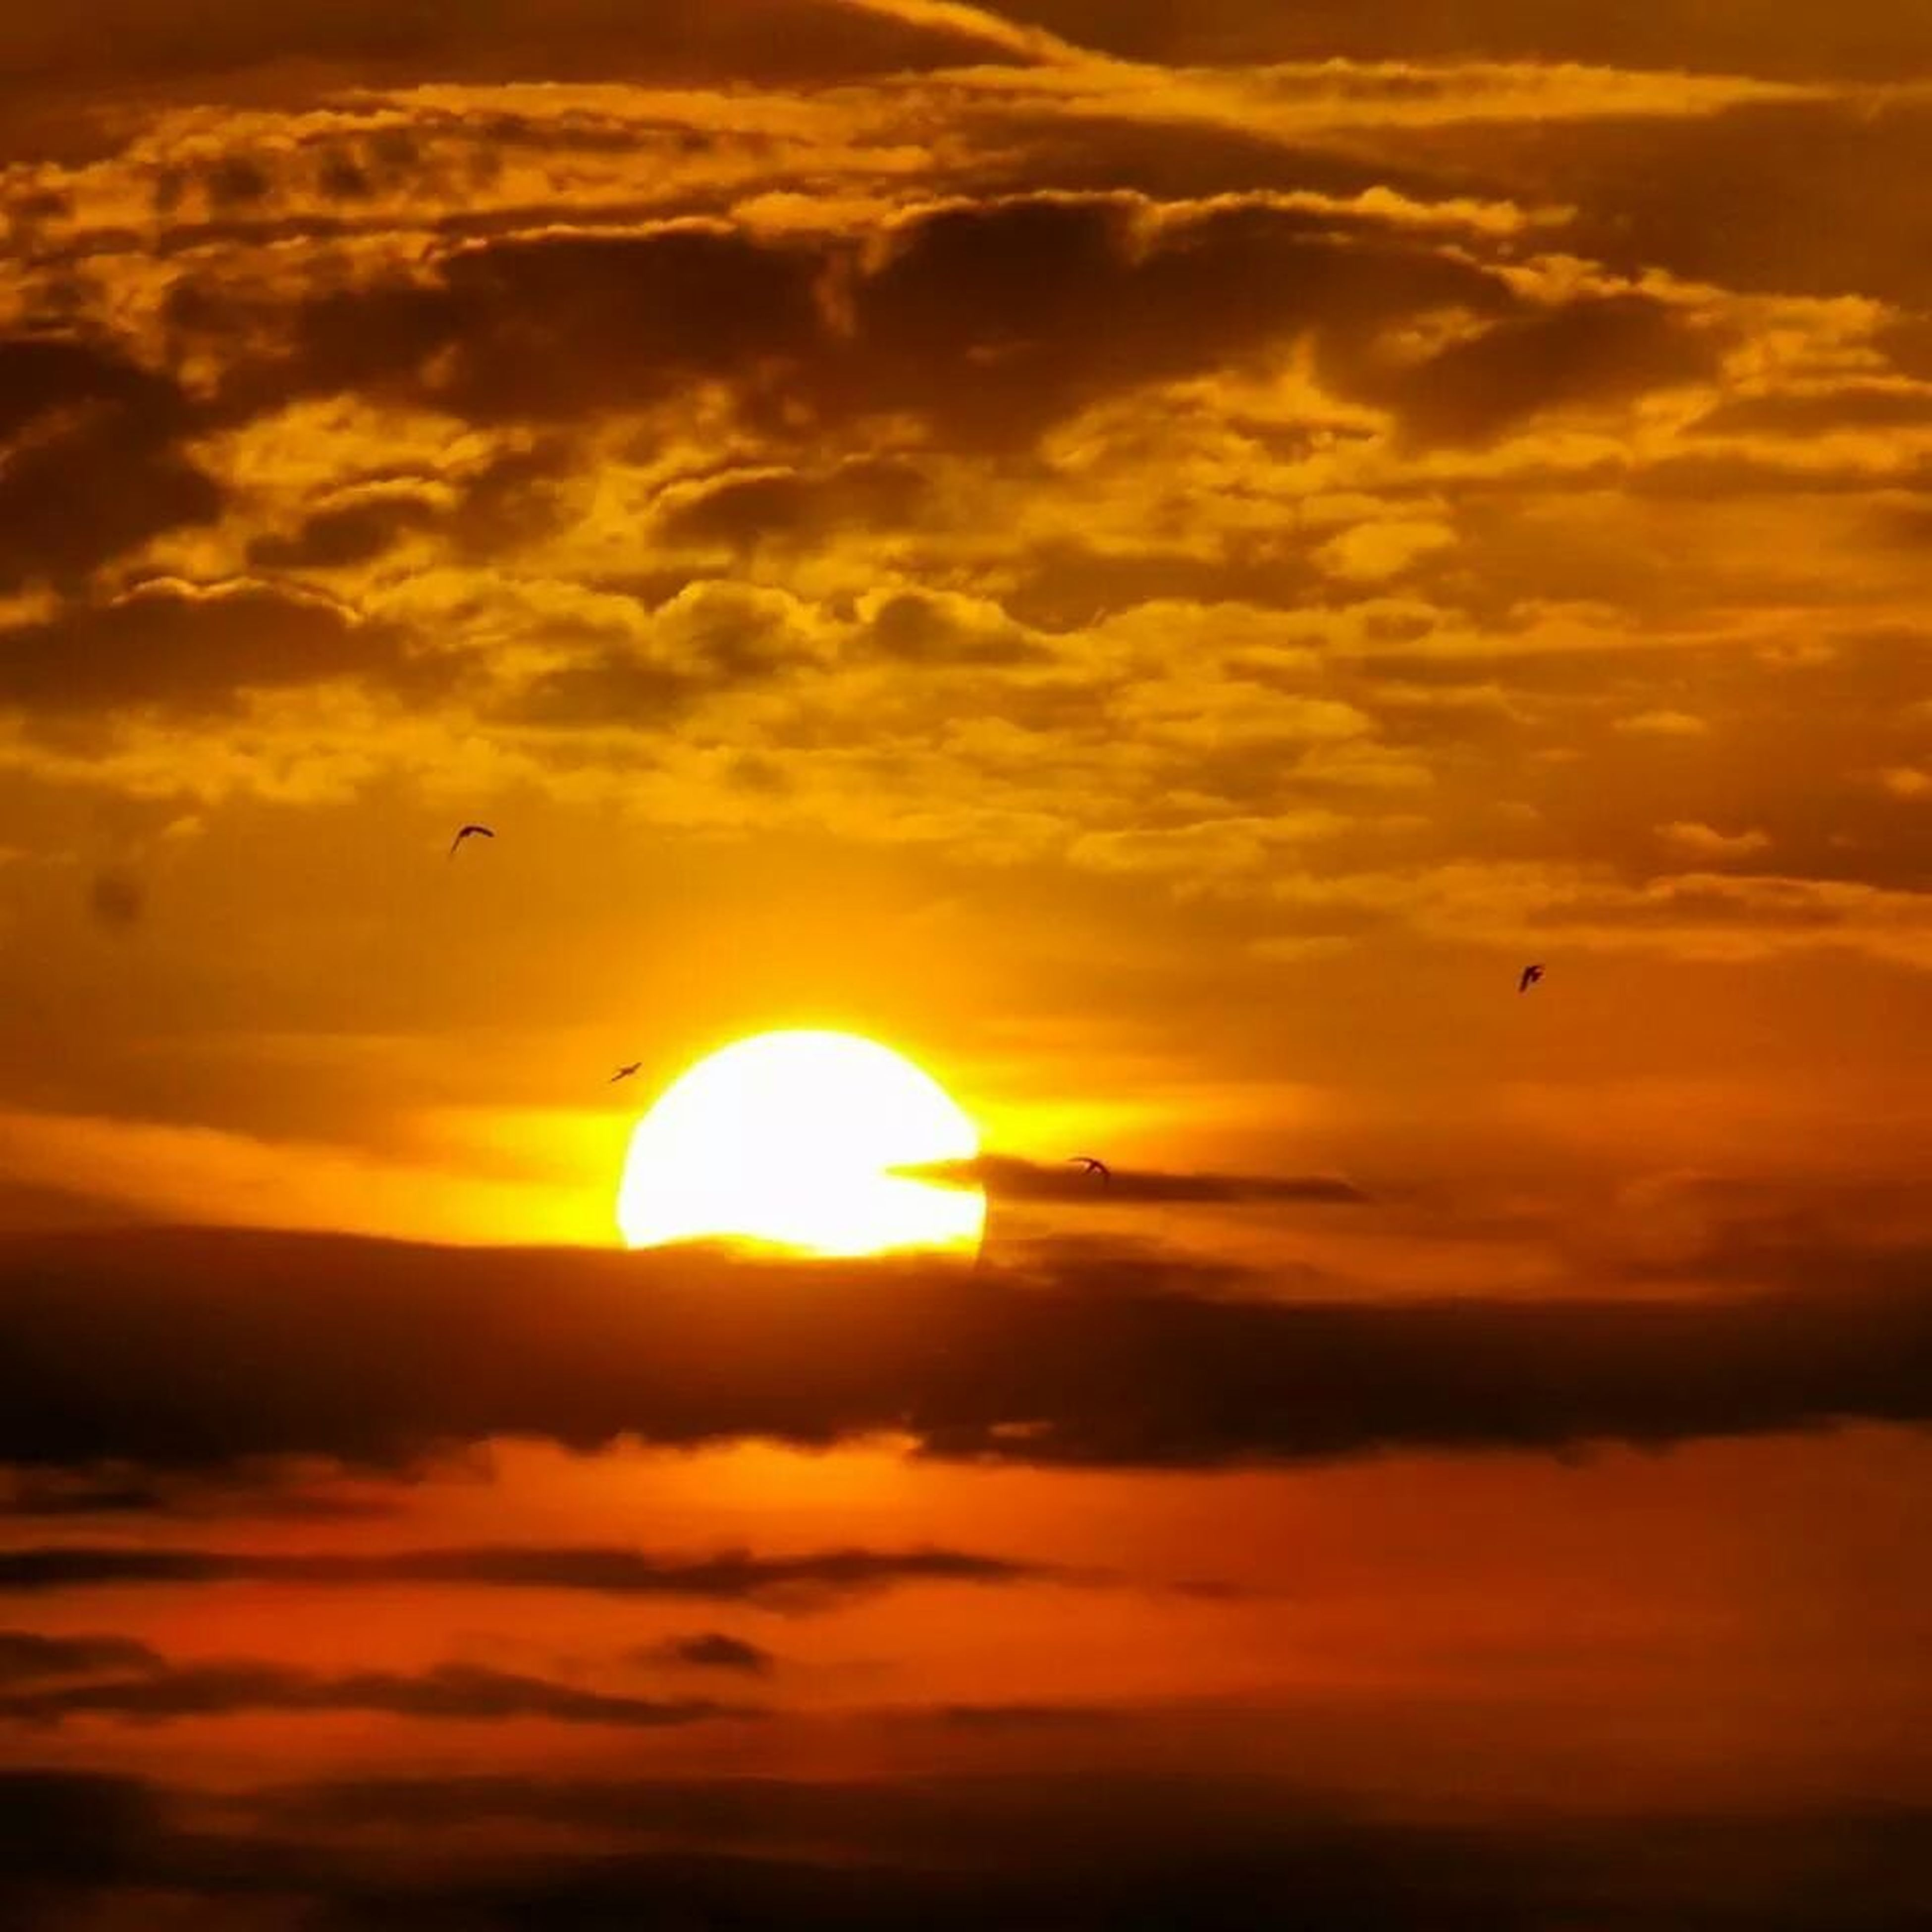 sunset, flying, orange color, sky, sun, cloud - sky, beauty in nature, scenics, mid-air, silhouette, tranquility, tranquil scene, bird, nature, cloud, idyllic, low angle view, cloudy, animal themes, dramatic sky